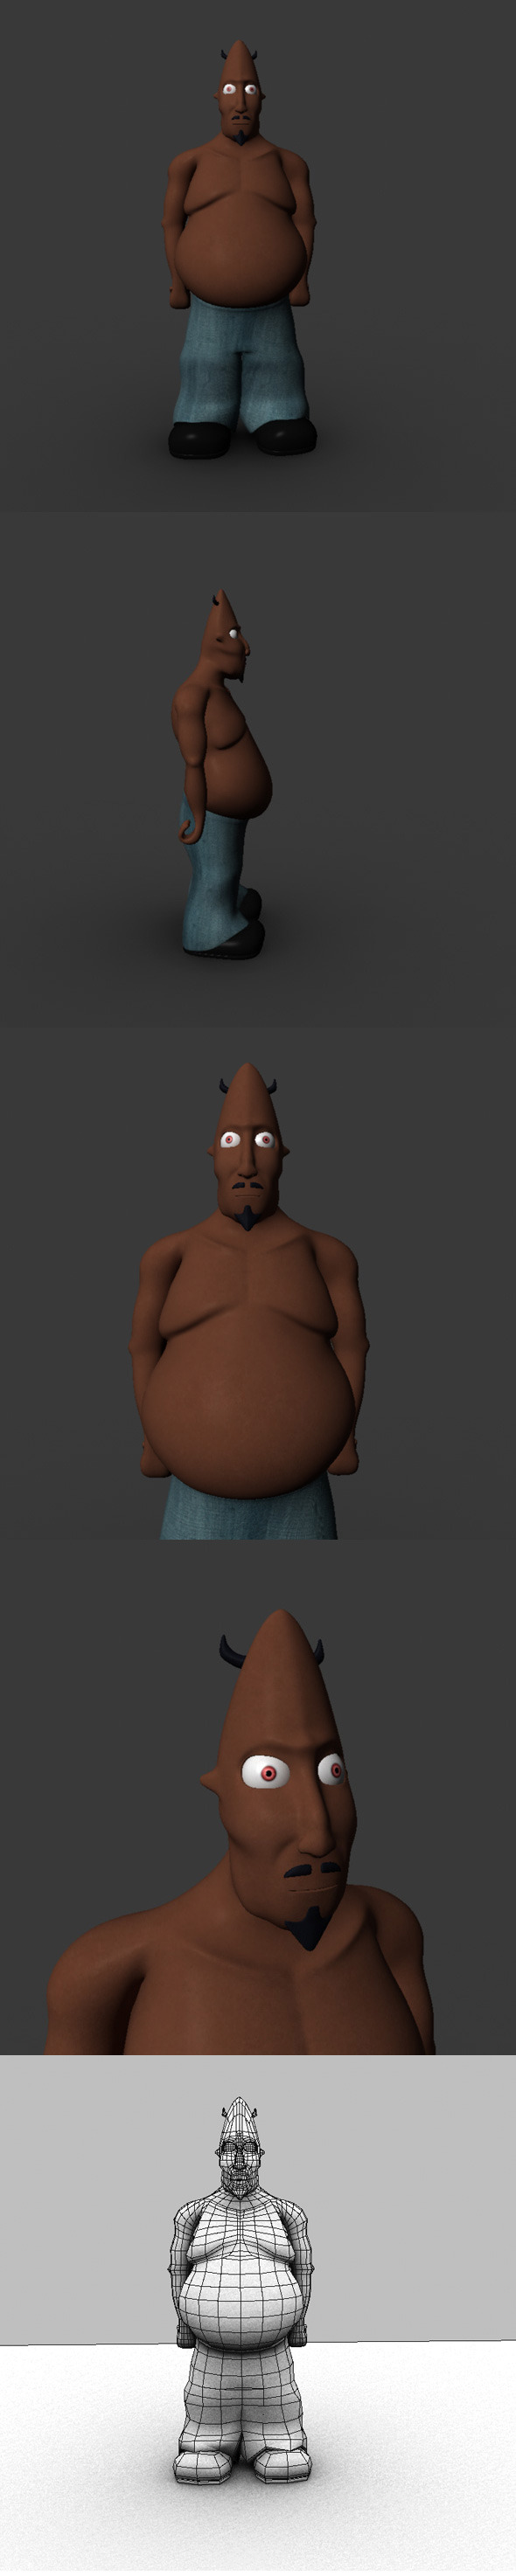 3DOcean Low Poly Cartoon Character 6867779